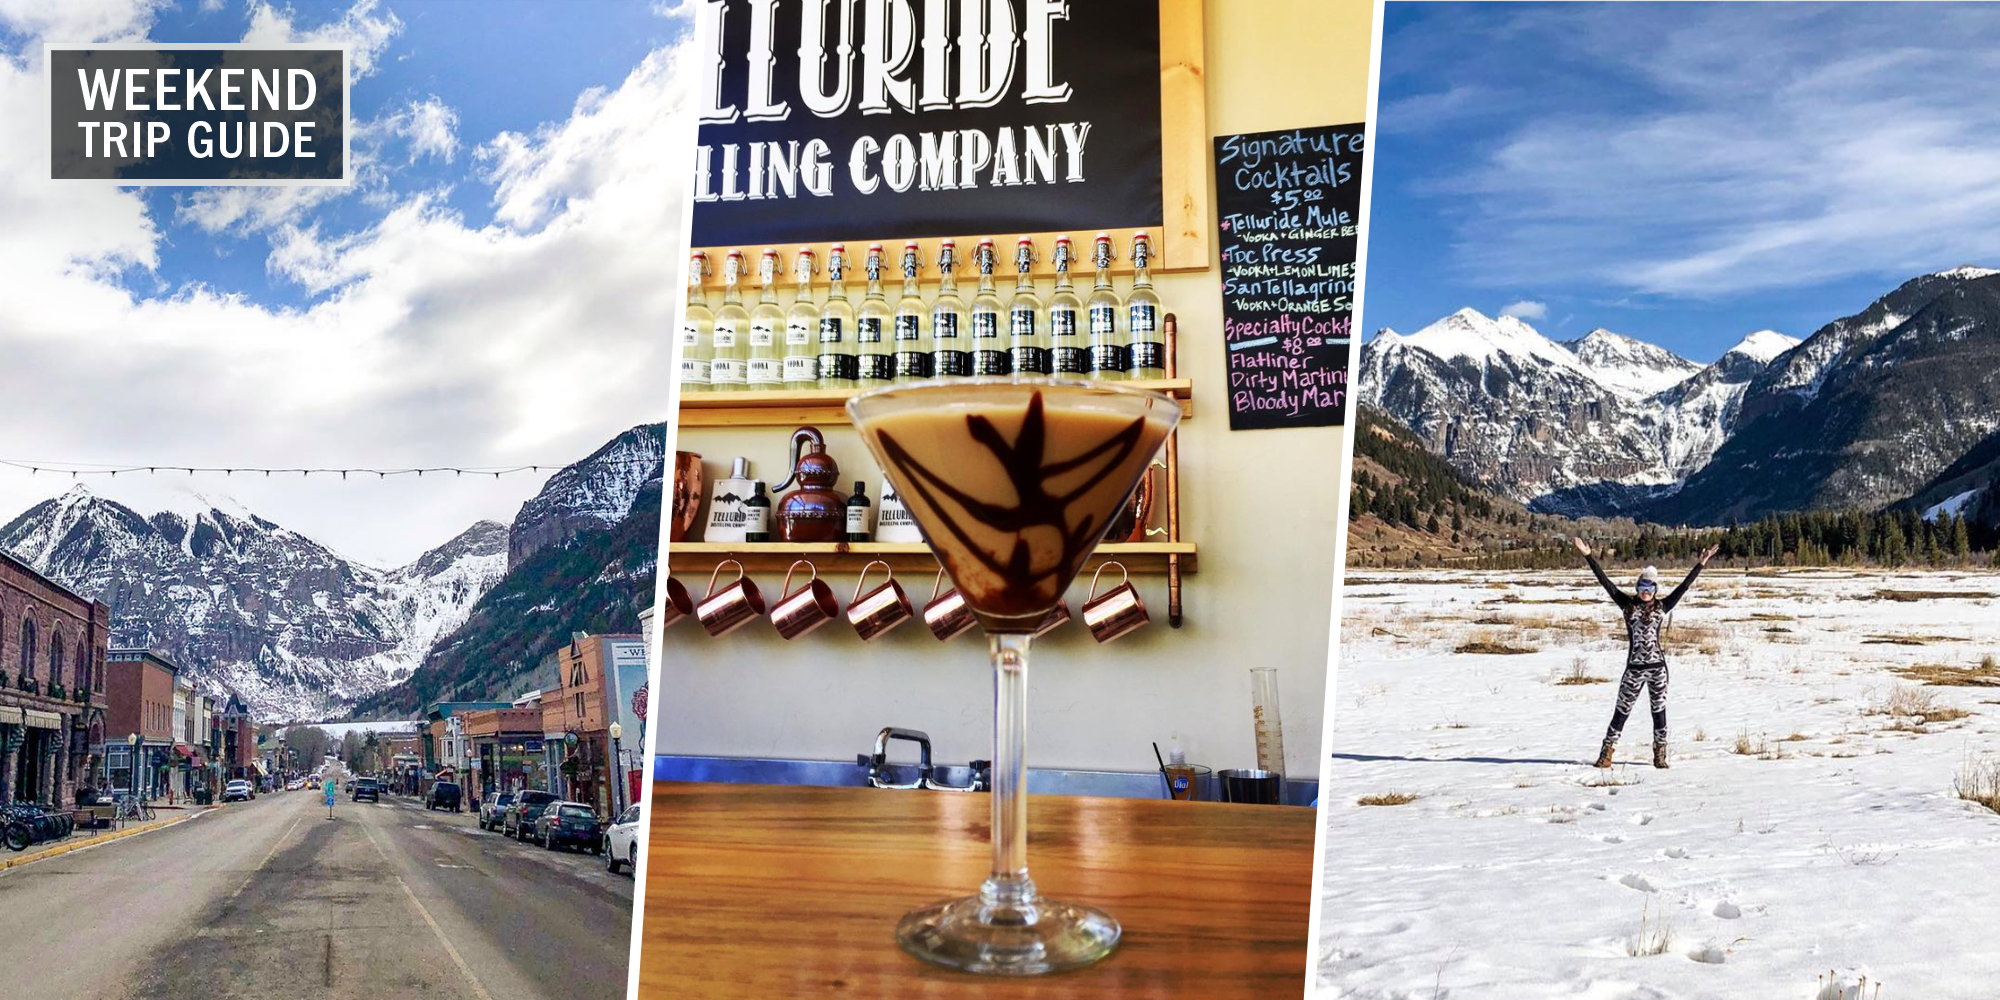 weekend trip guide where to stay eat and drink in telluride colorado weekend trip guide where to stay eat